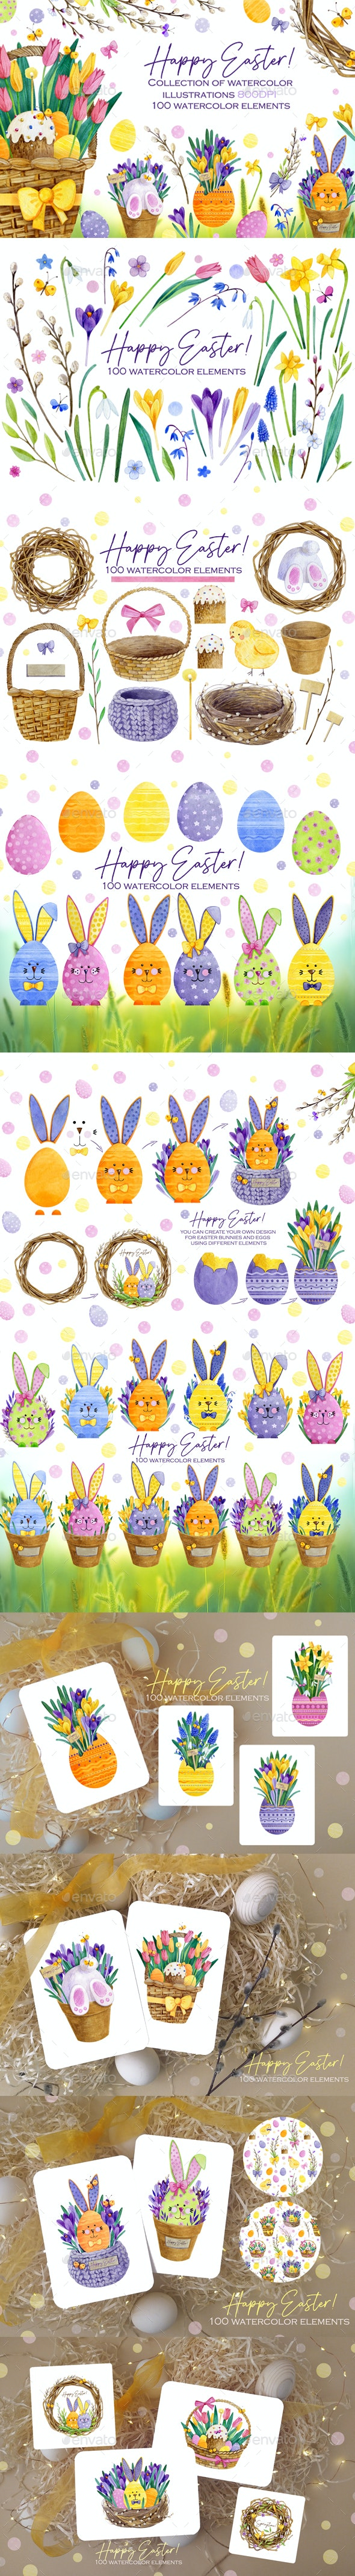 Watercolor Happy Easter Bunnies Collection - Illustrations Graphics